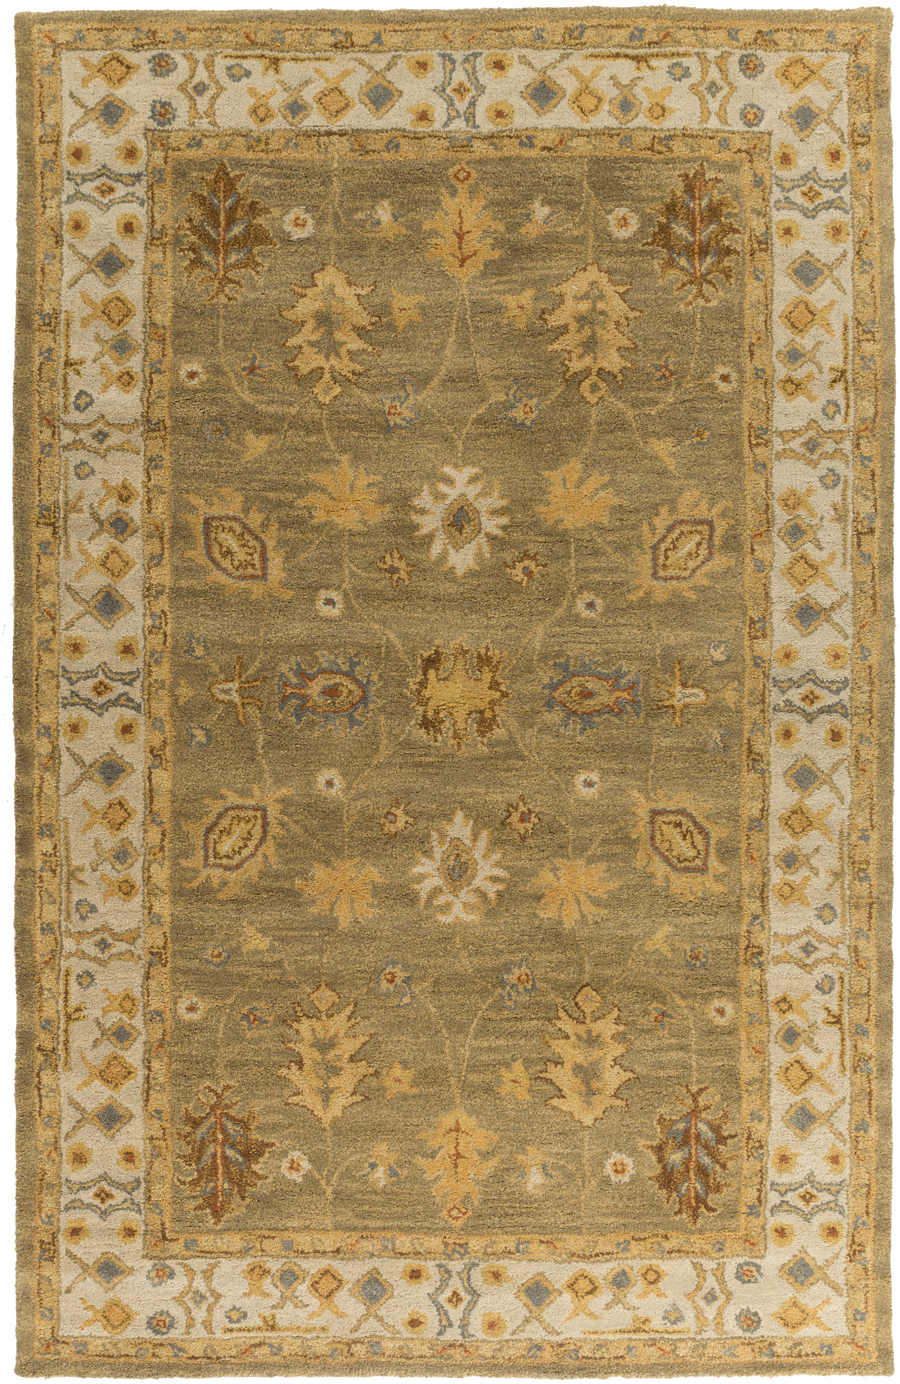 Artistic Weavers Middleton Willow AWHR2049 Sage/Ivory Area Rug